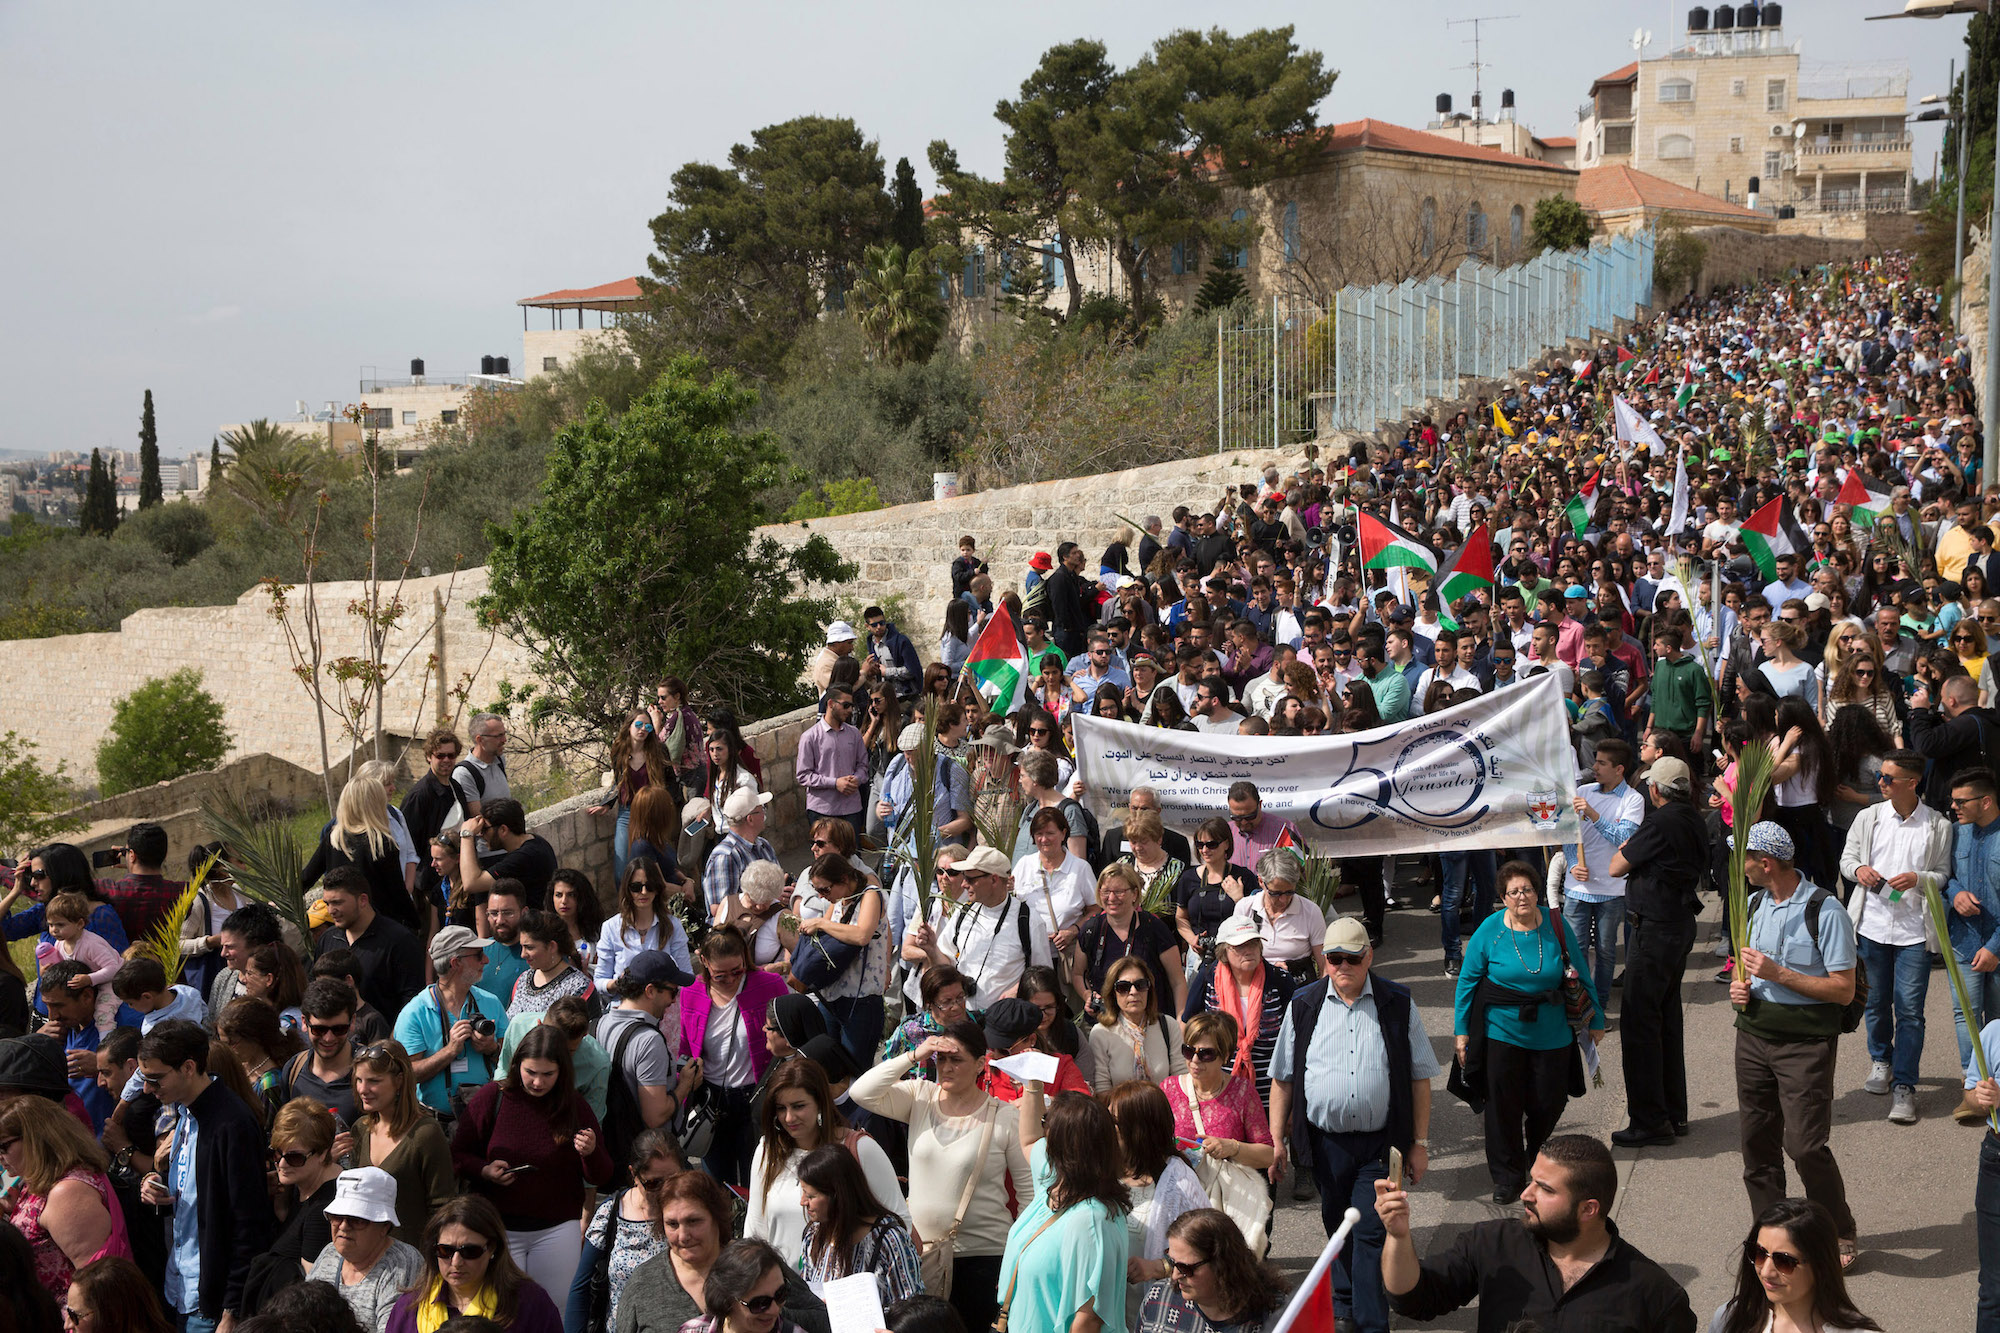 Christian Pilgrims celebrate during the Palm Sunday procession on the Mt. of Olives on April 9,2017. (Photo by Heidi Levine/Sipa Press).